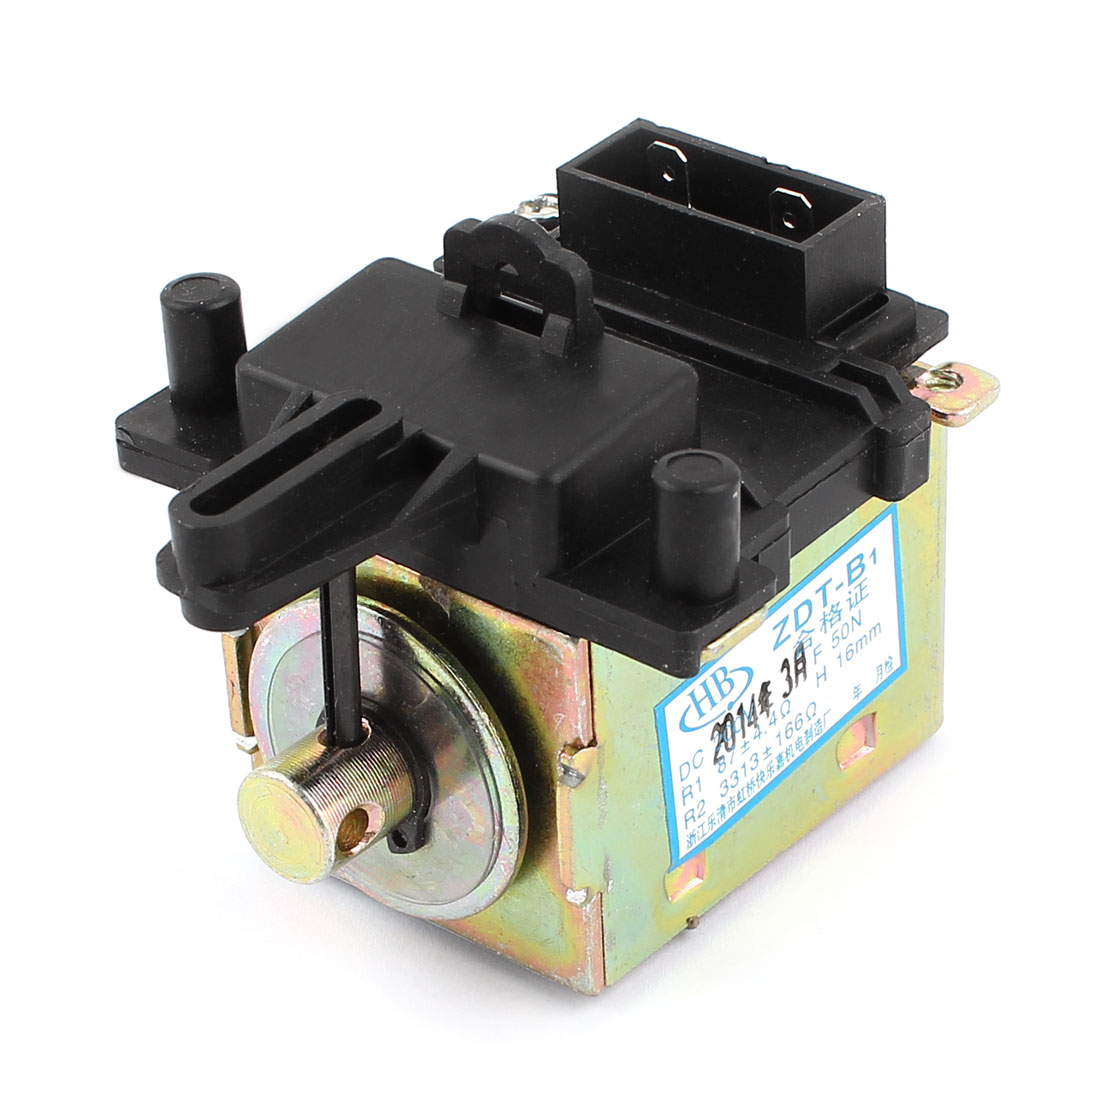 DC 200V 50N 16mm Drain Motor Tractor Black Bronze Tone for Washing Machine